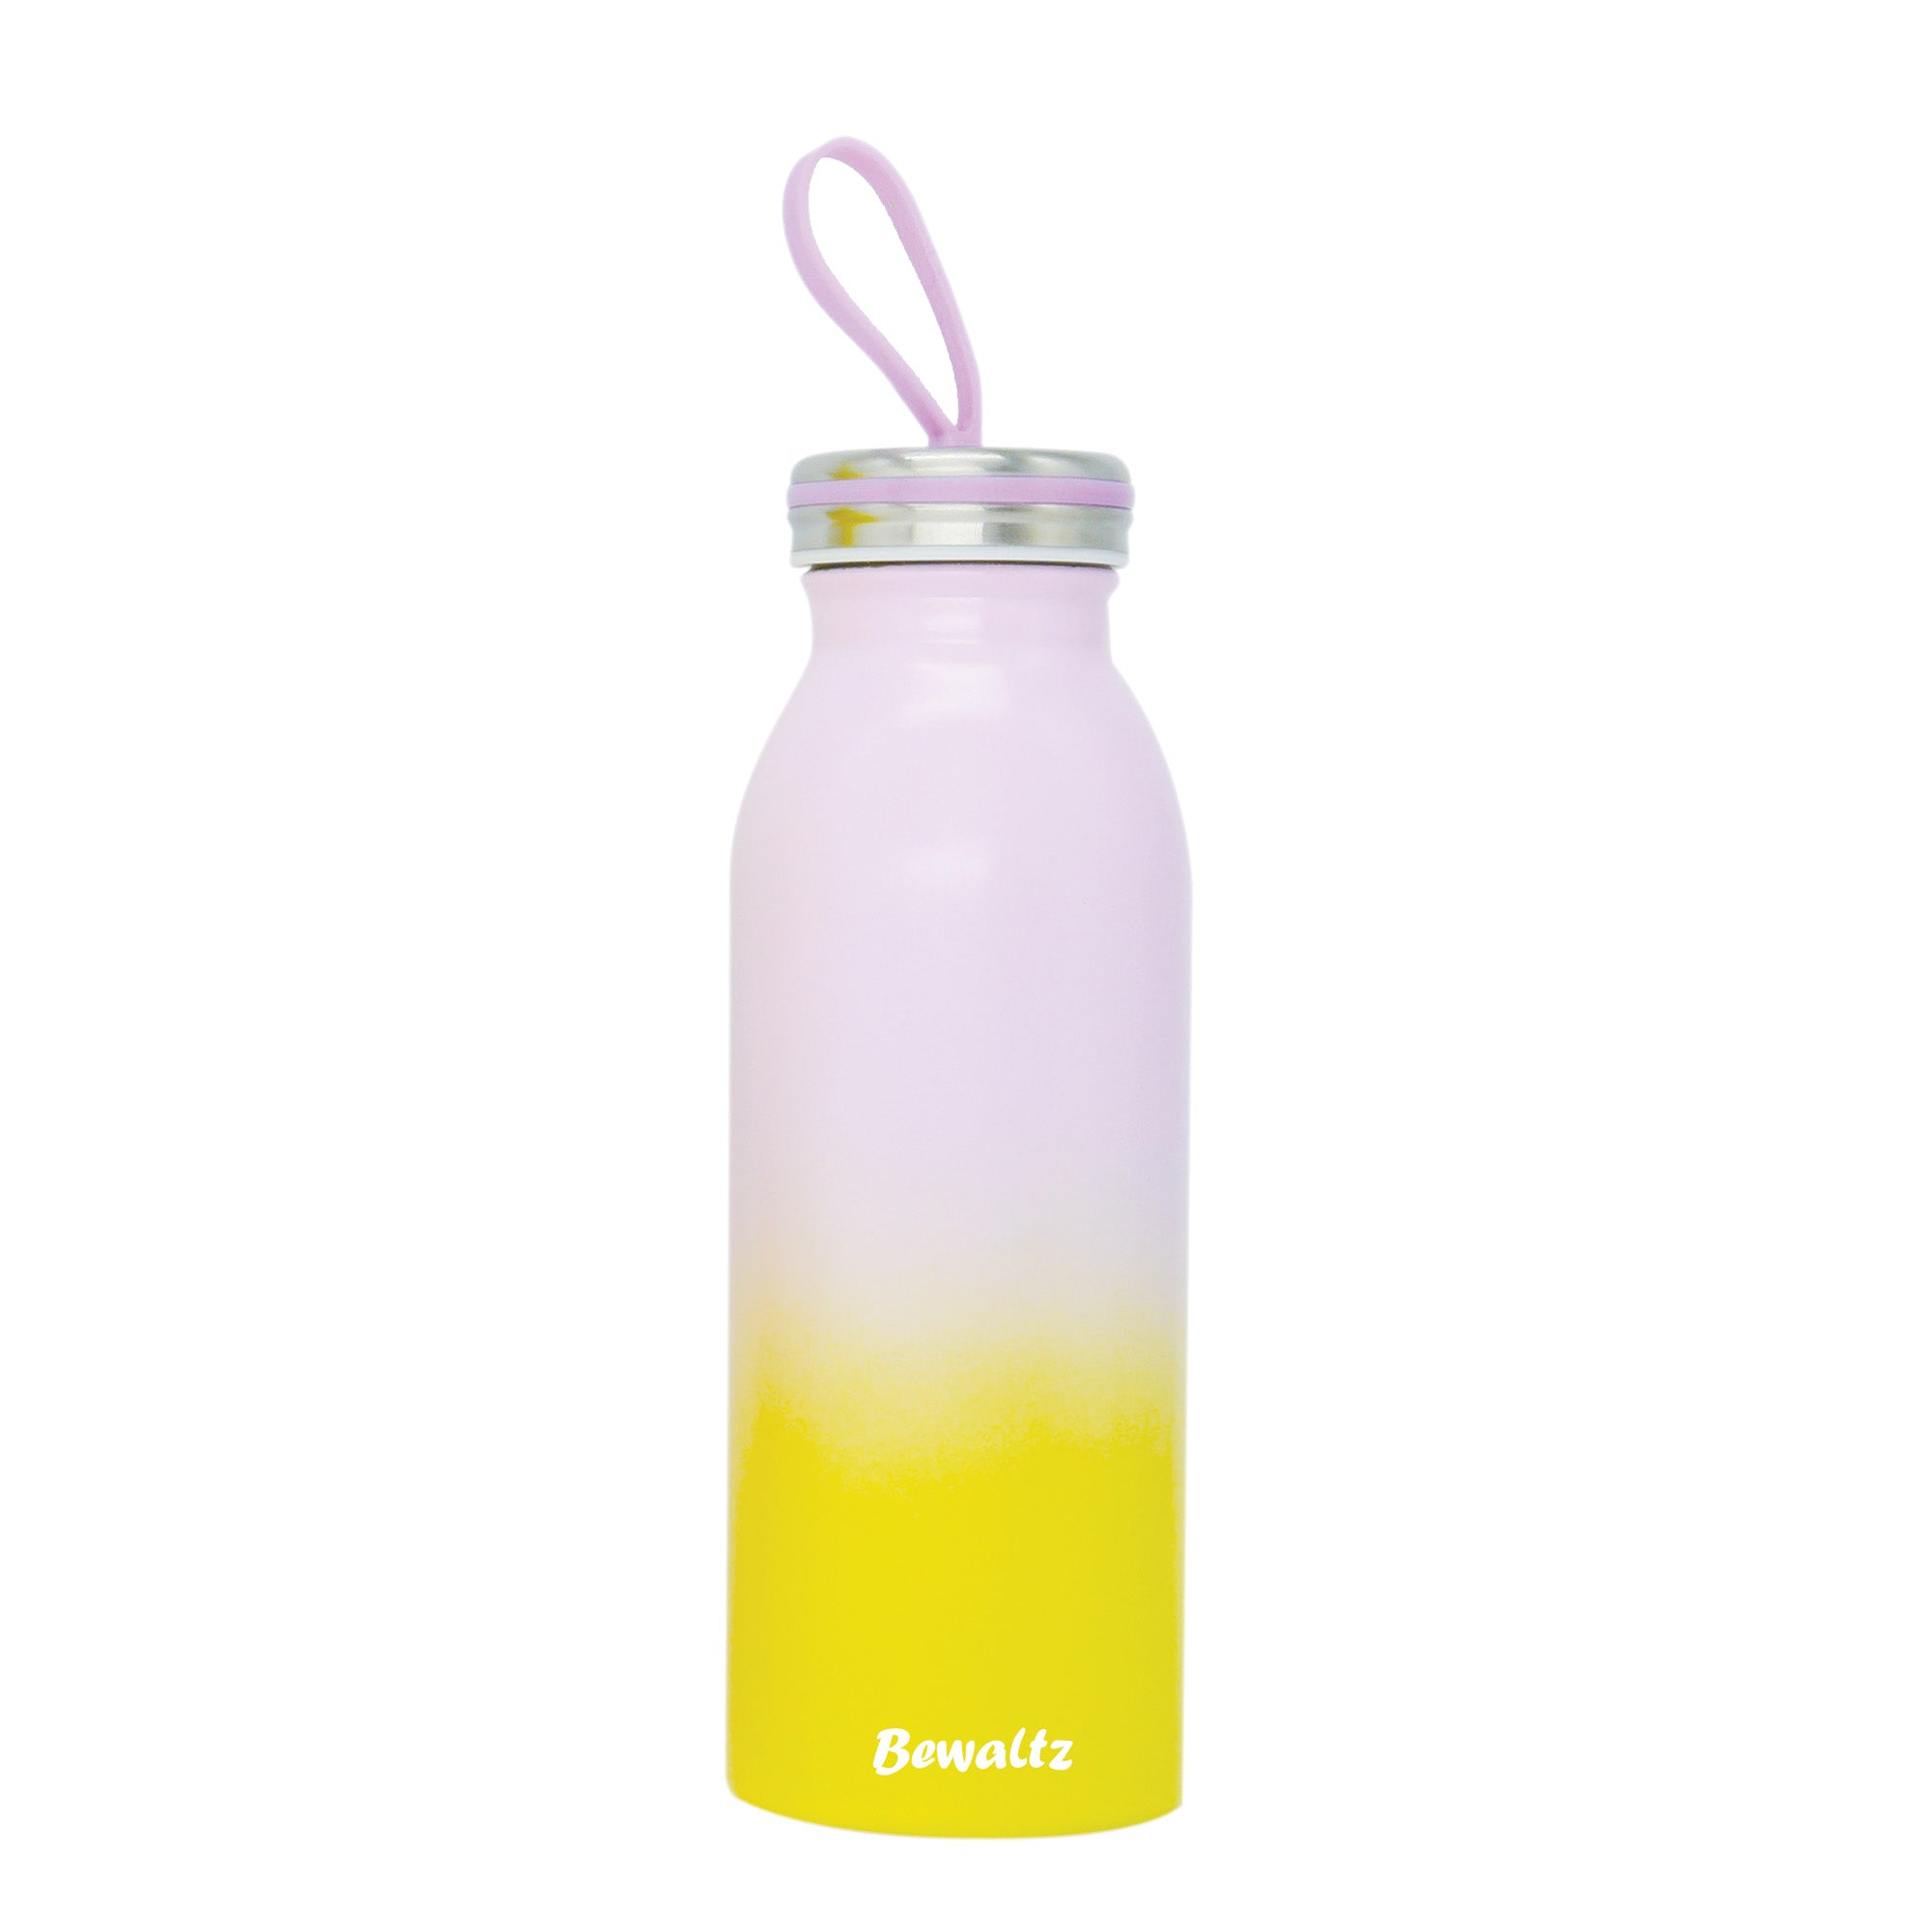 Stainless Steel Milk Bottle - Purple